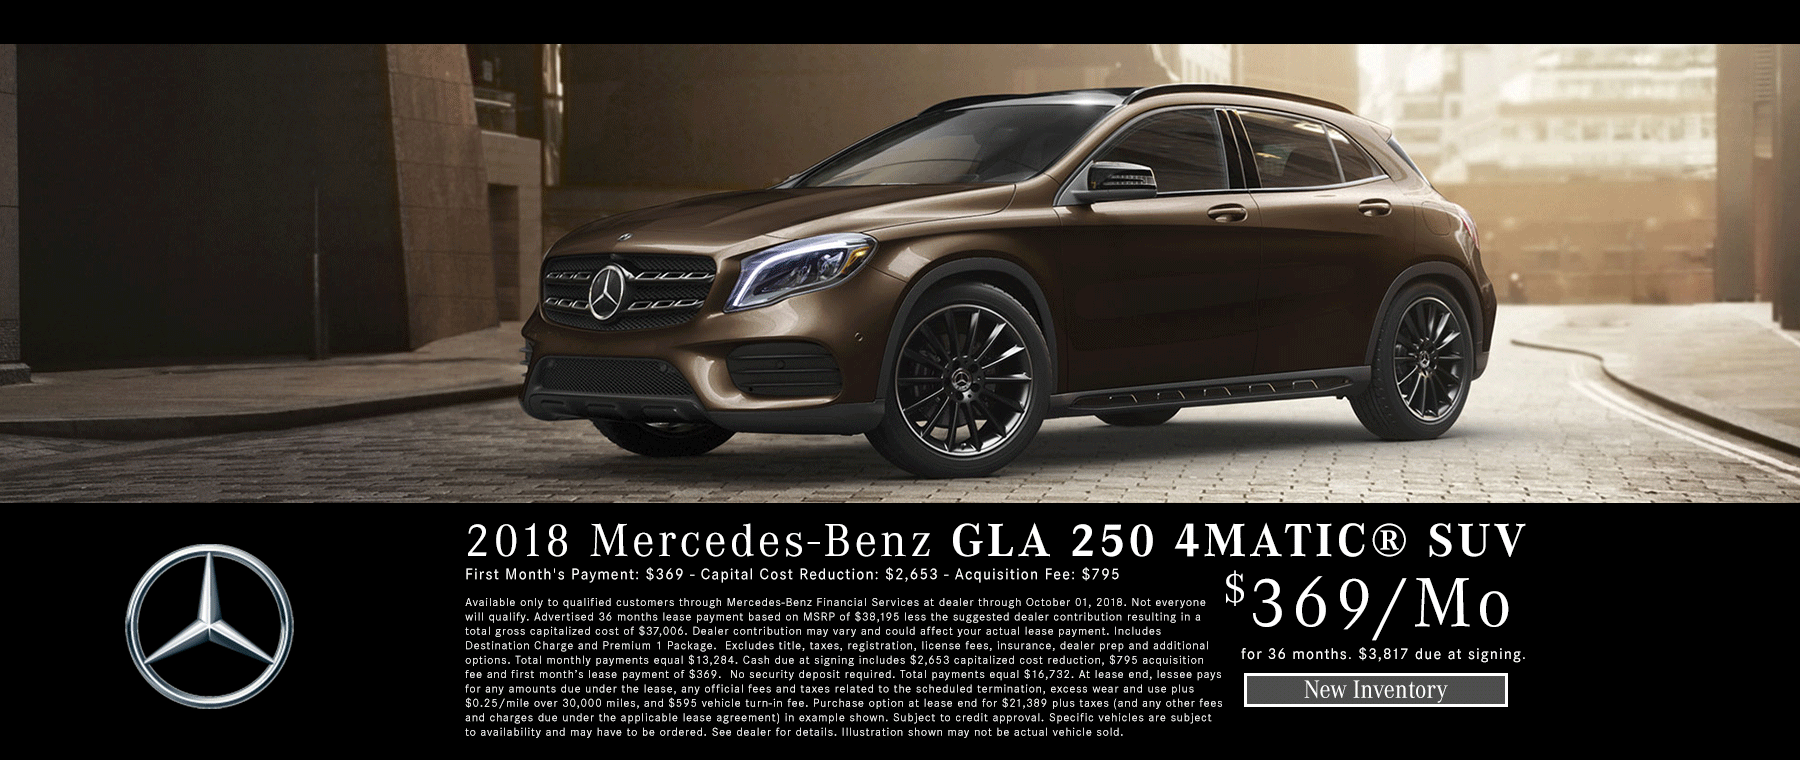 2018 Mercedes-Benz GLA 250 4MATIC For Sale Bakersfield